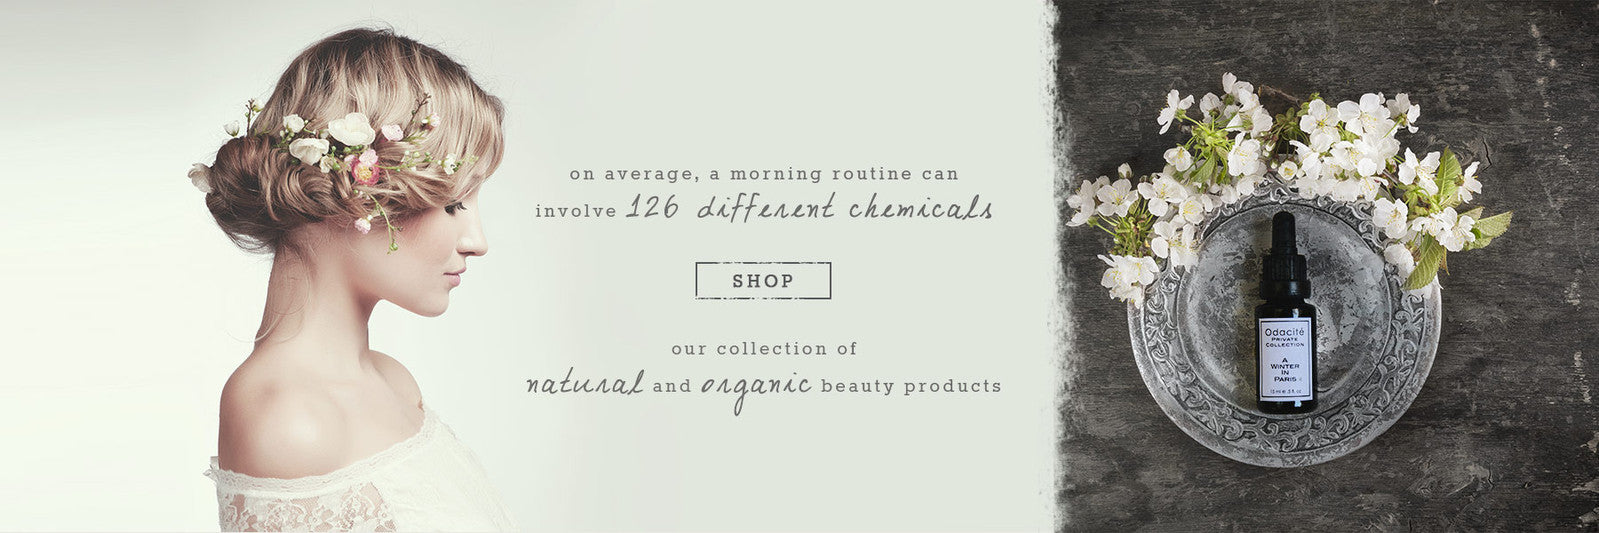 Shop Natural Skin Care, Organic Makeup & Green Beauty